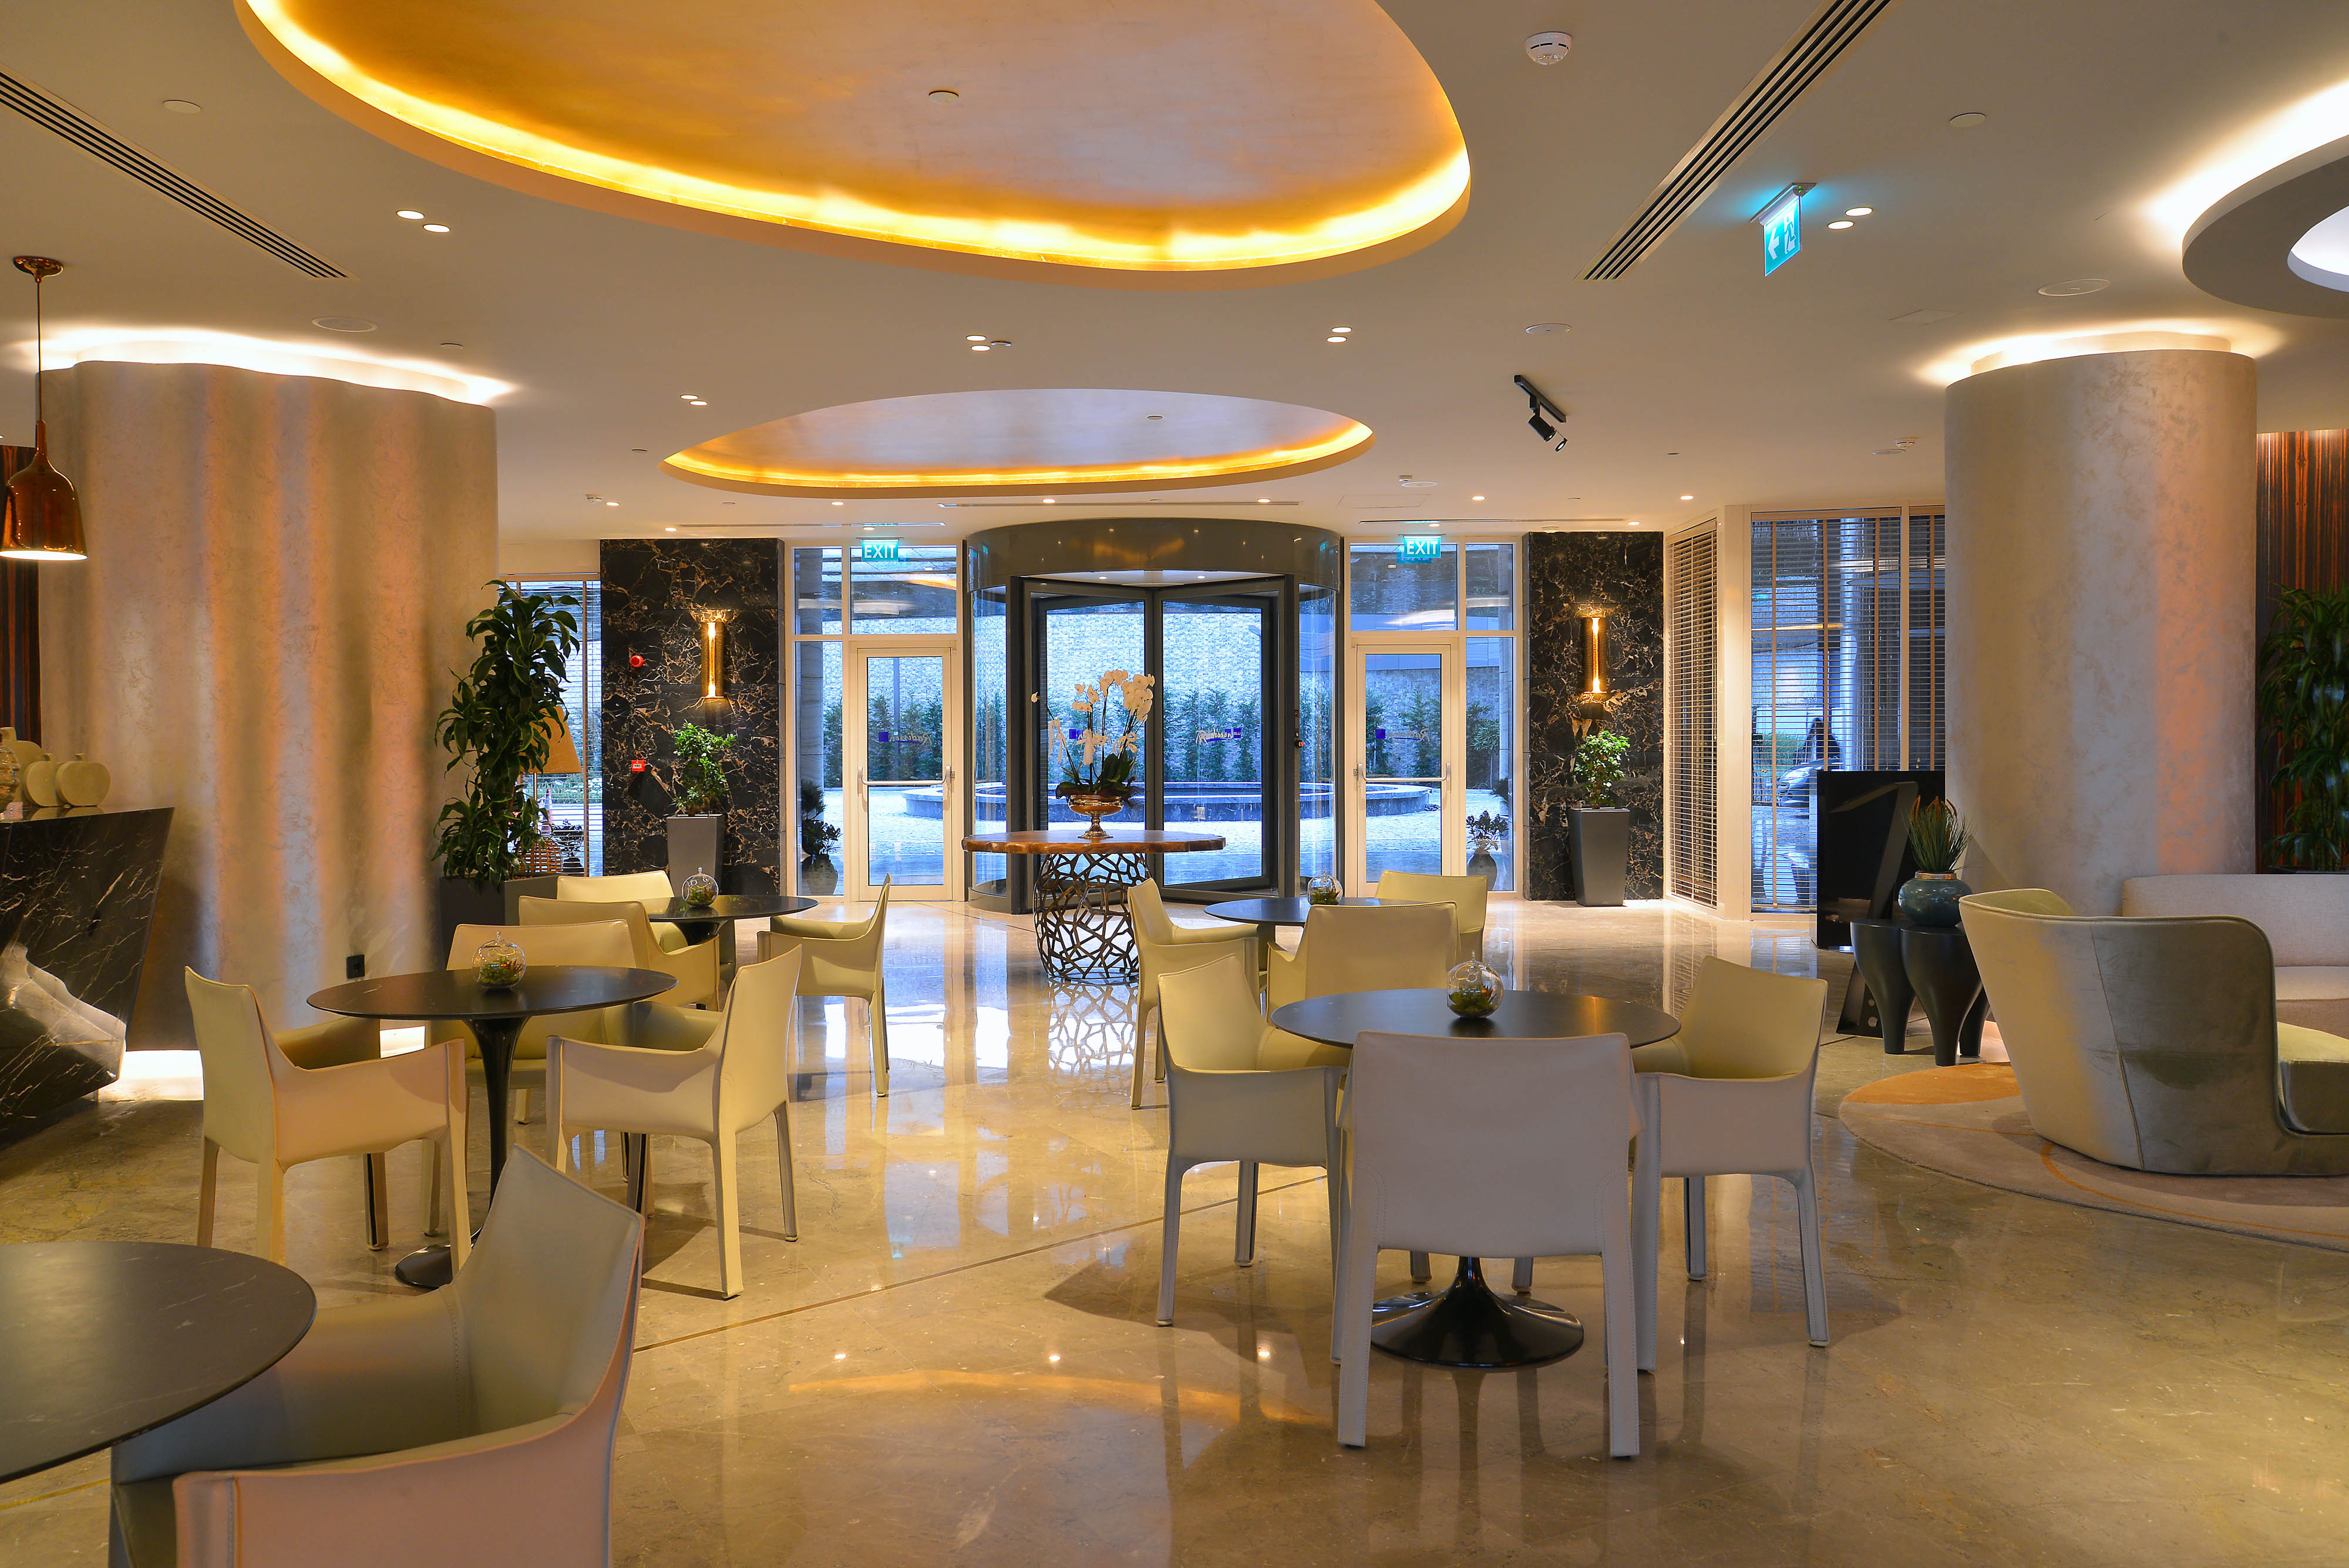 Discover The Best Hospitality Design Projects From Brabbu Contract  brabbu contract Discover The Best Hospitality Design Projects From Brabbu Contract MBP 3530 1